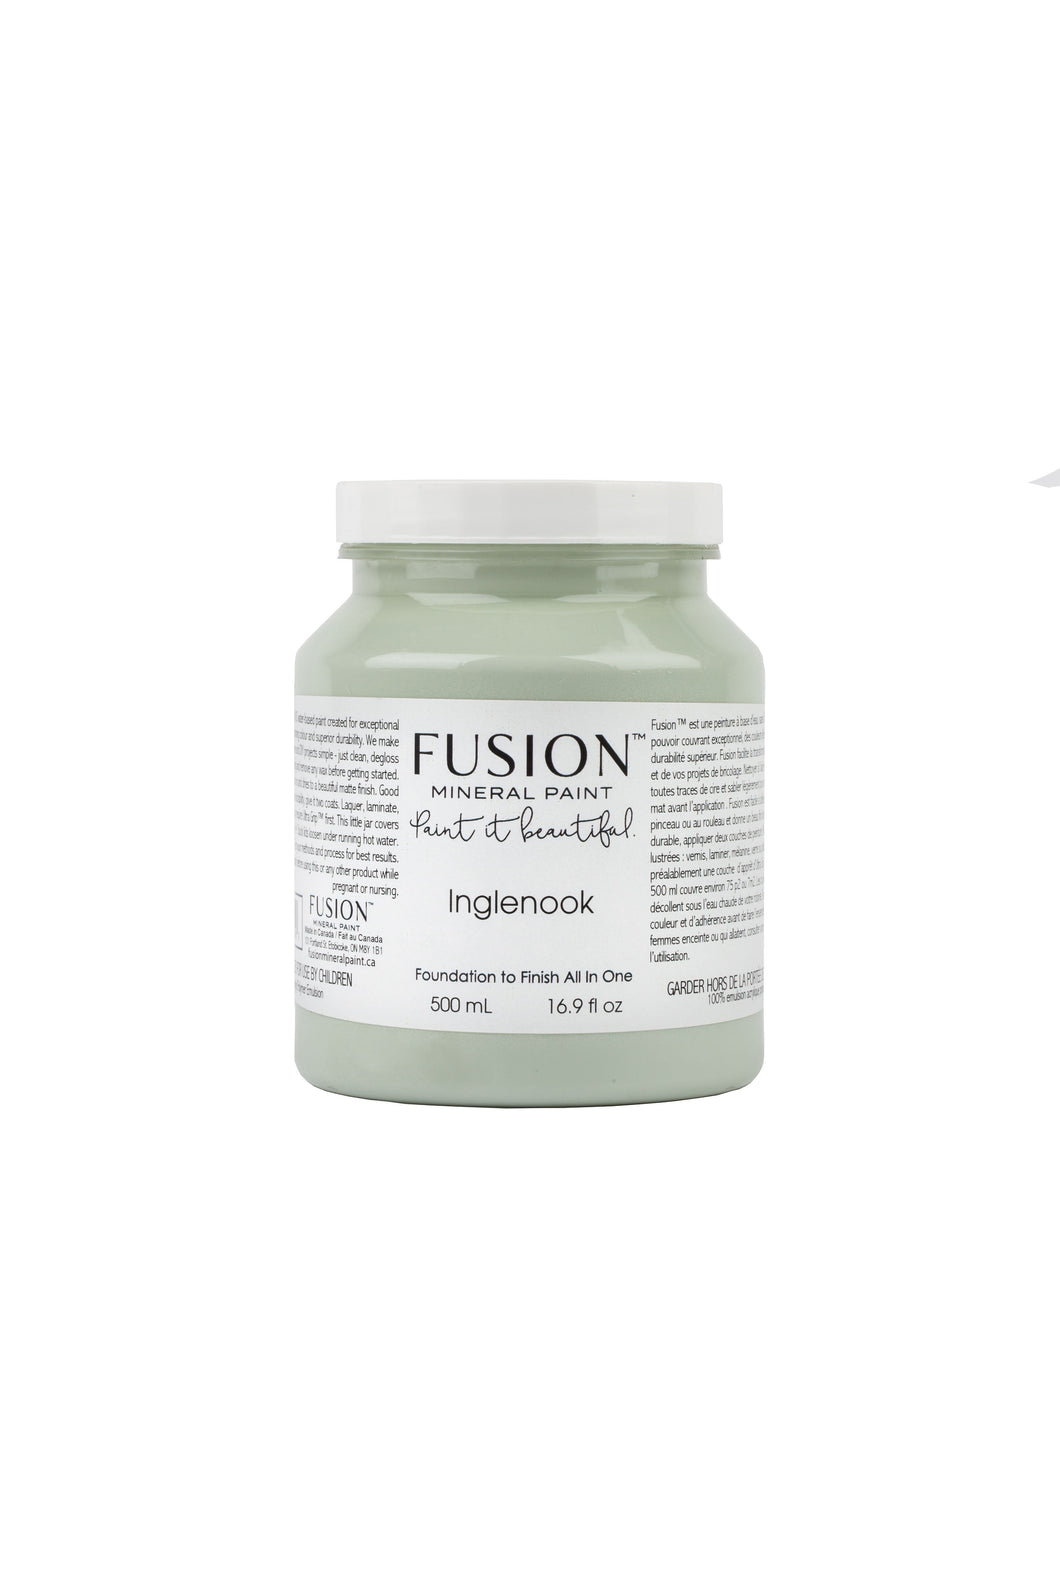 Fusion mineral paint | Inglenook | 500ml | Colour Me KT